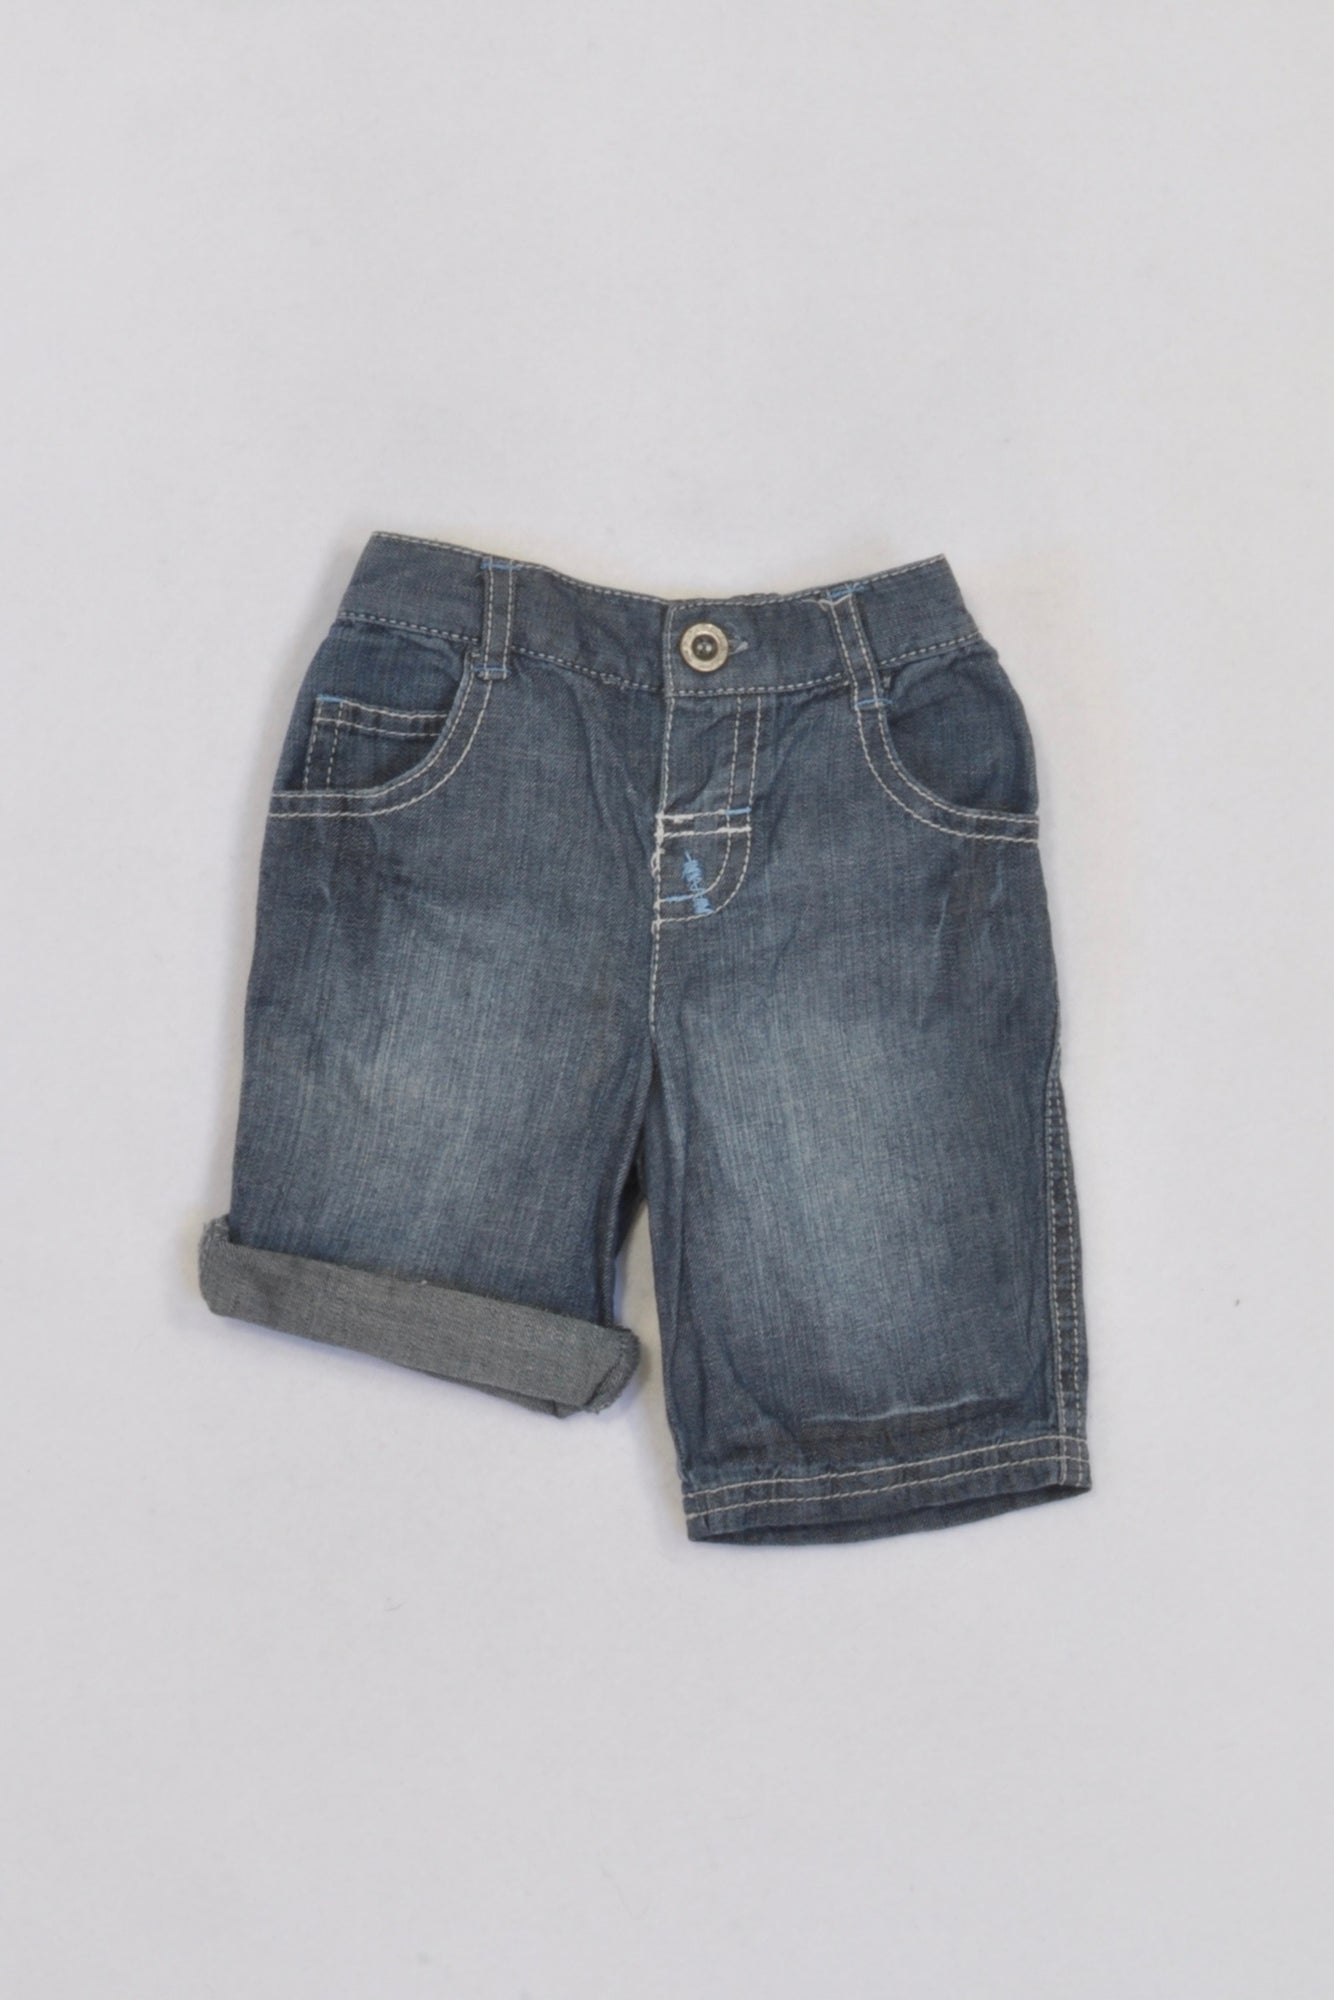 Matalan Stone Washed Roll Up Denim Shorts Boys 0-3 months